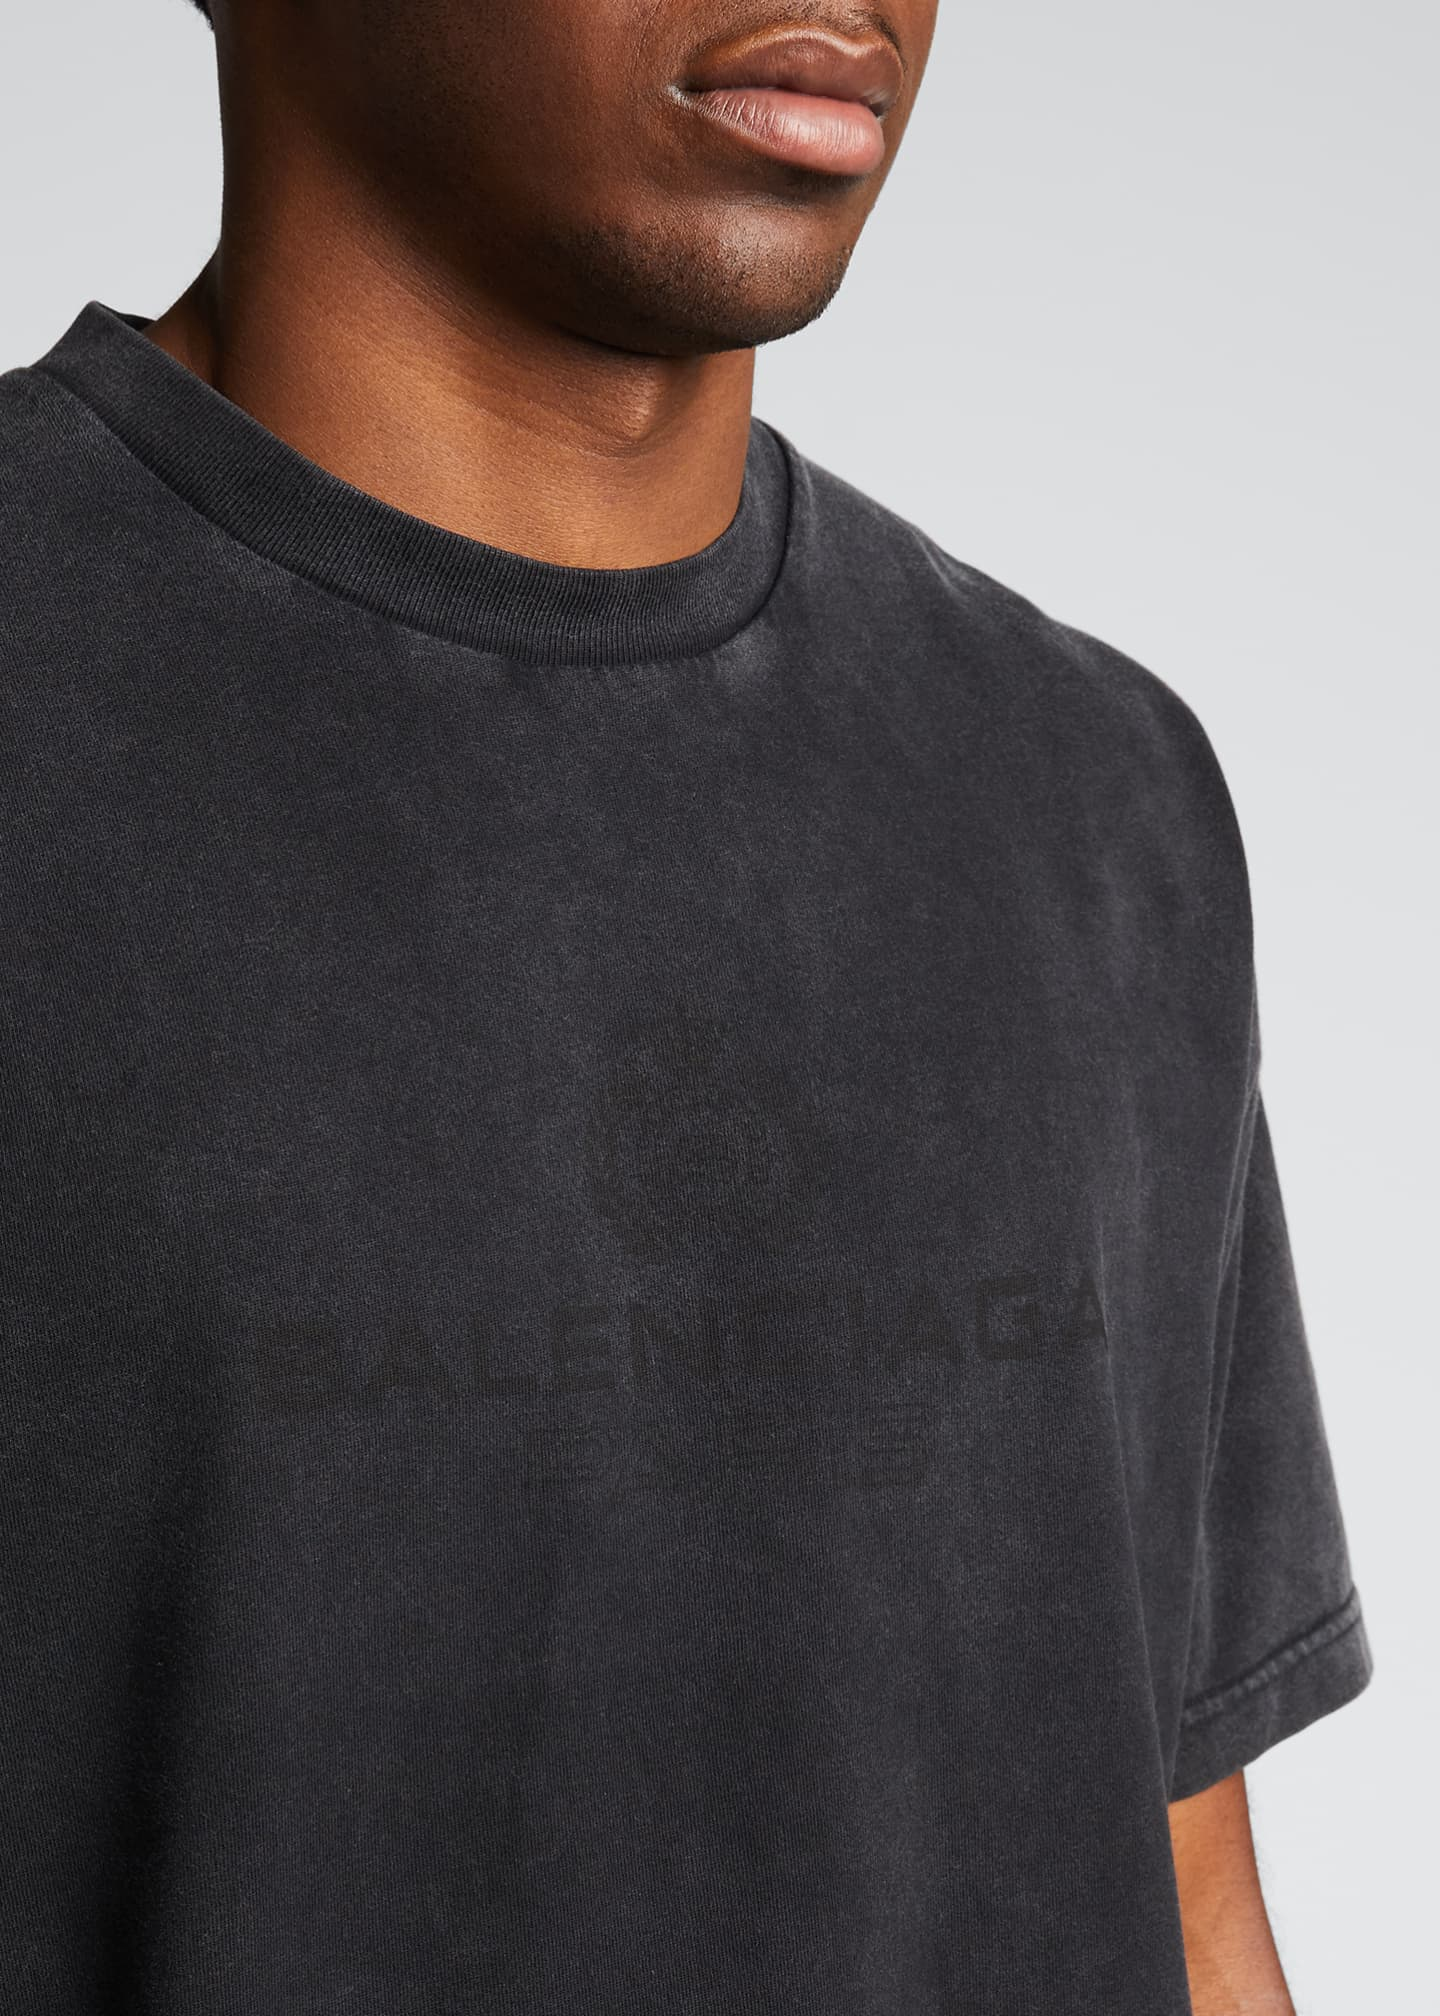 Image 4 of 5: Men's Washed Logo Crewneck T-Shirt